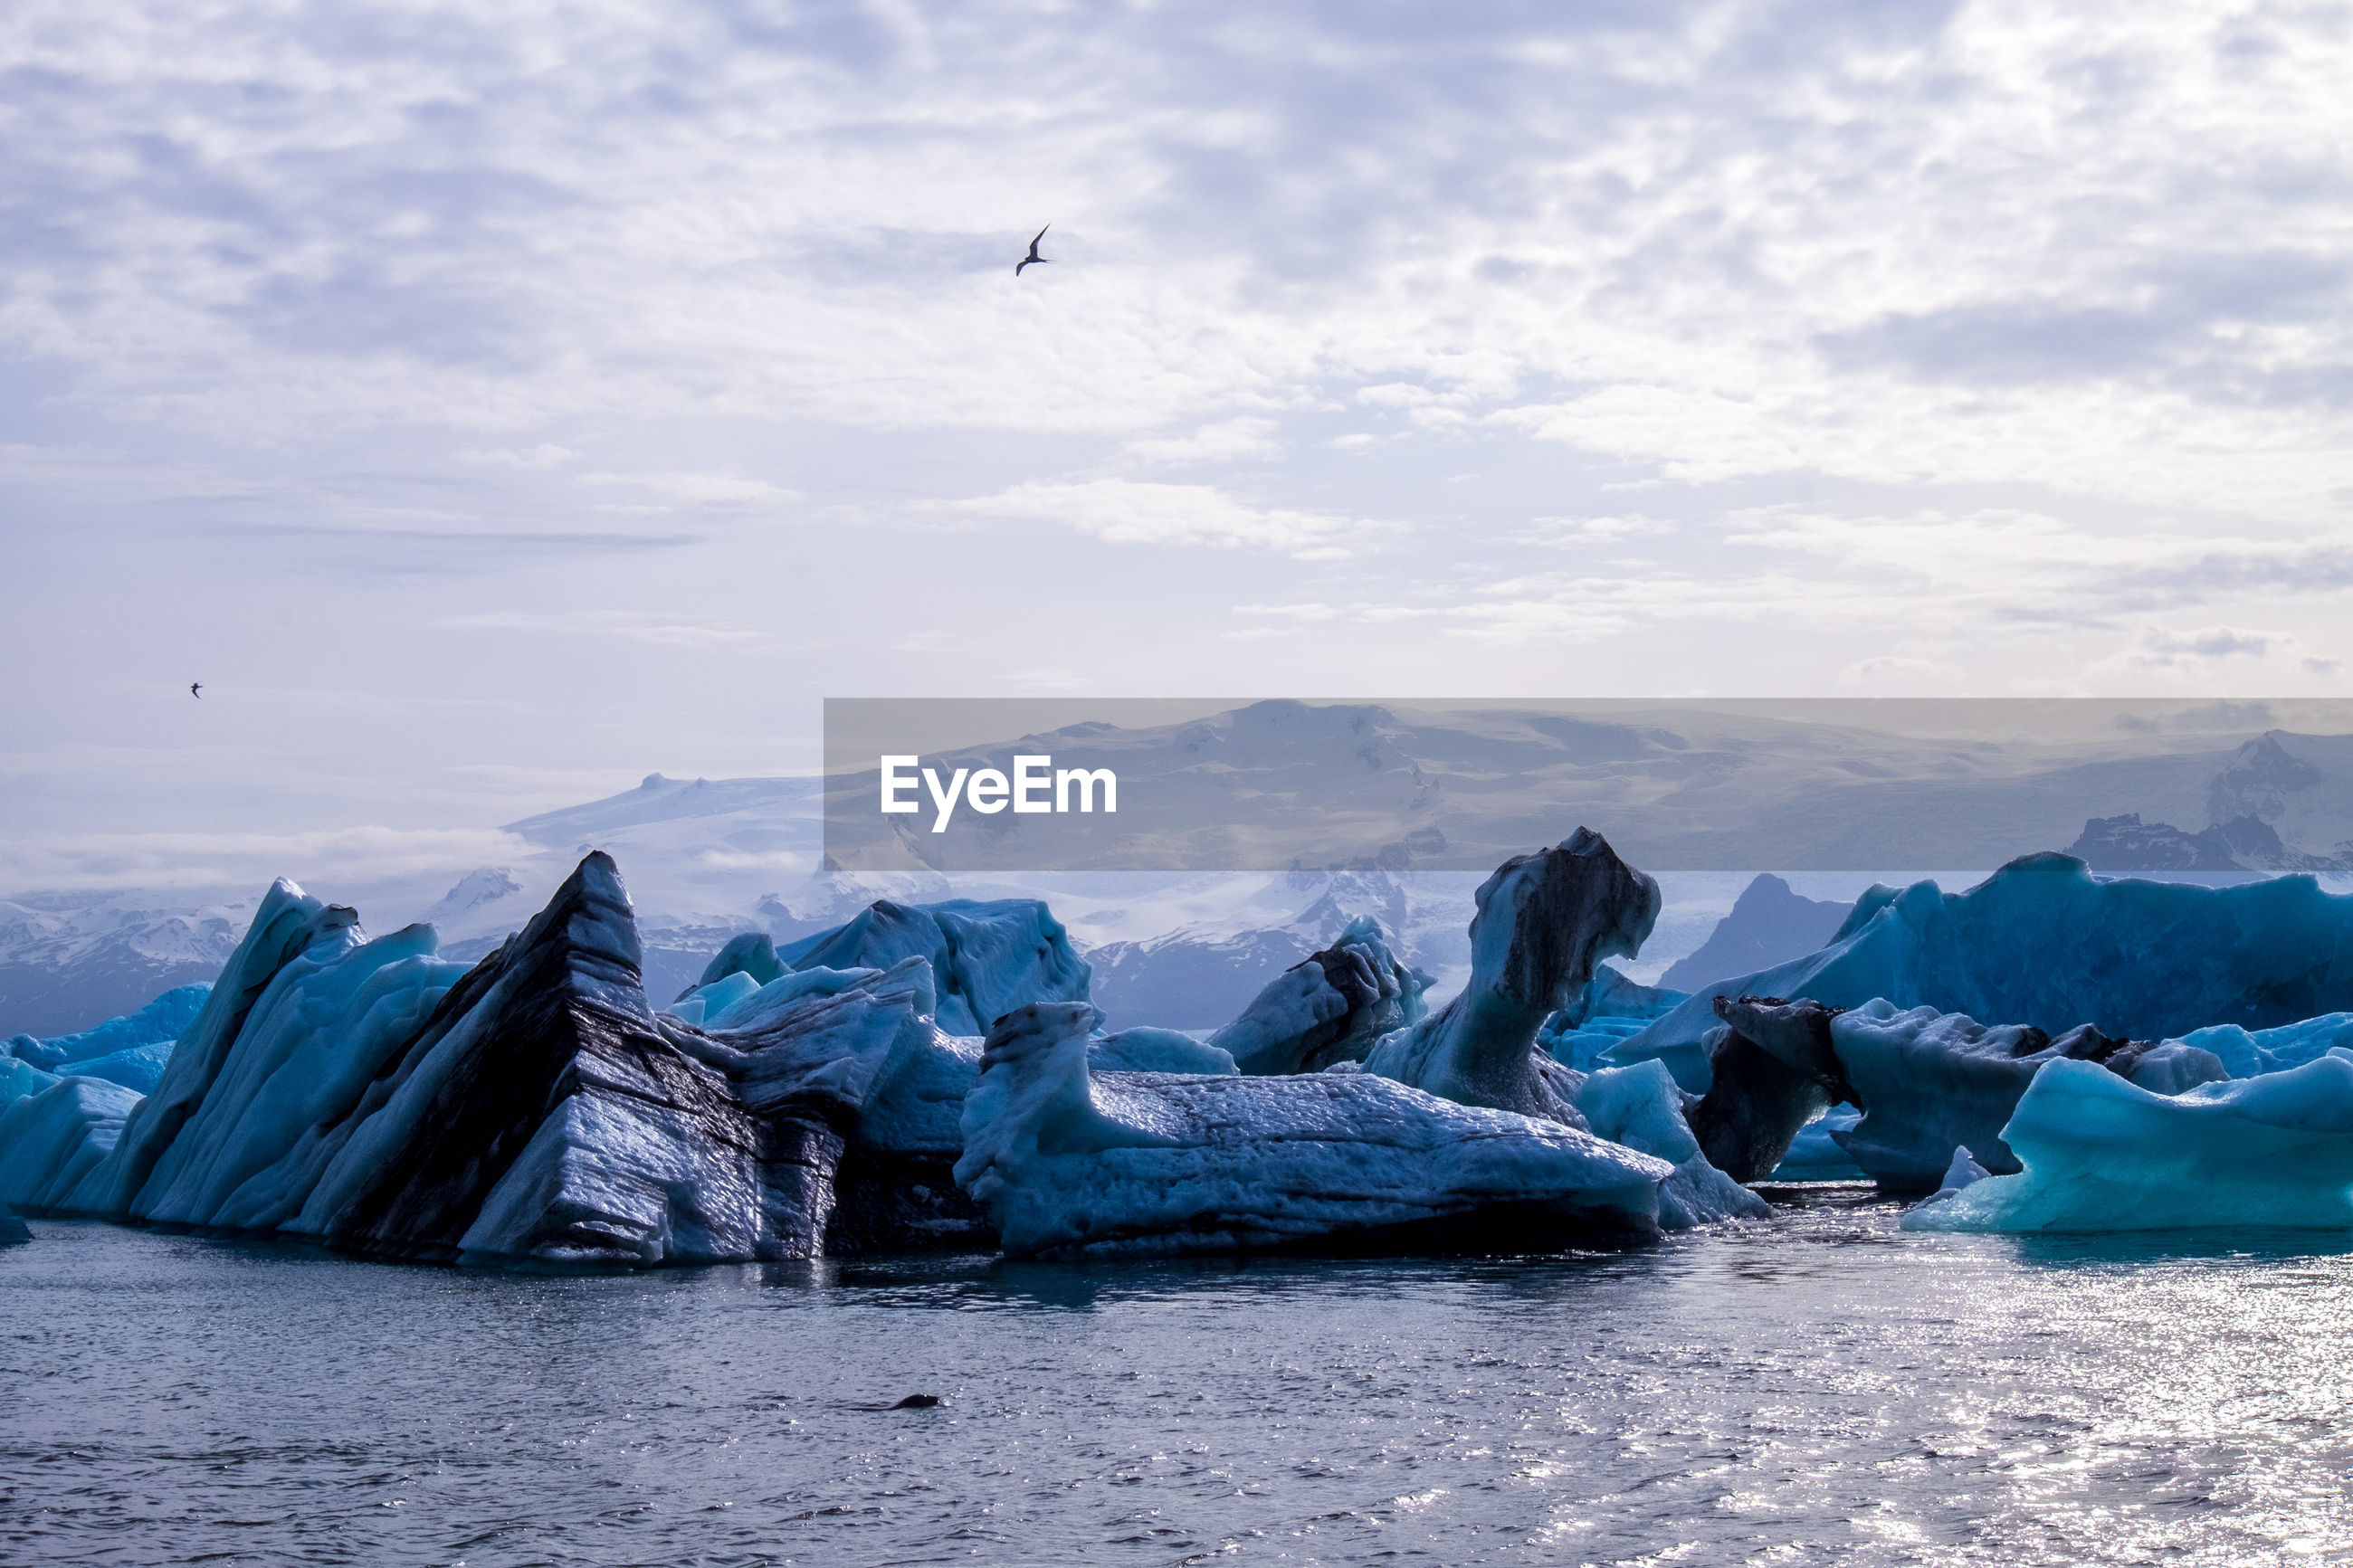 Icebergs in sea against sky during winter